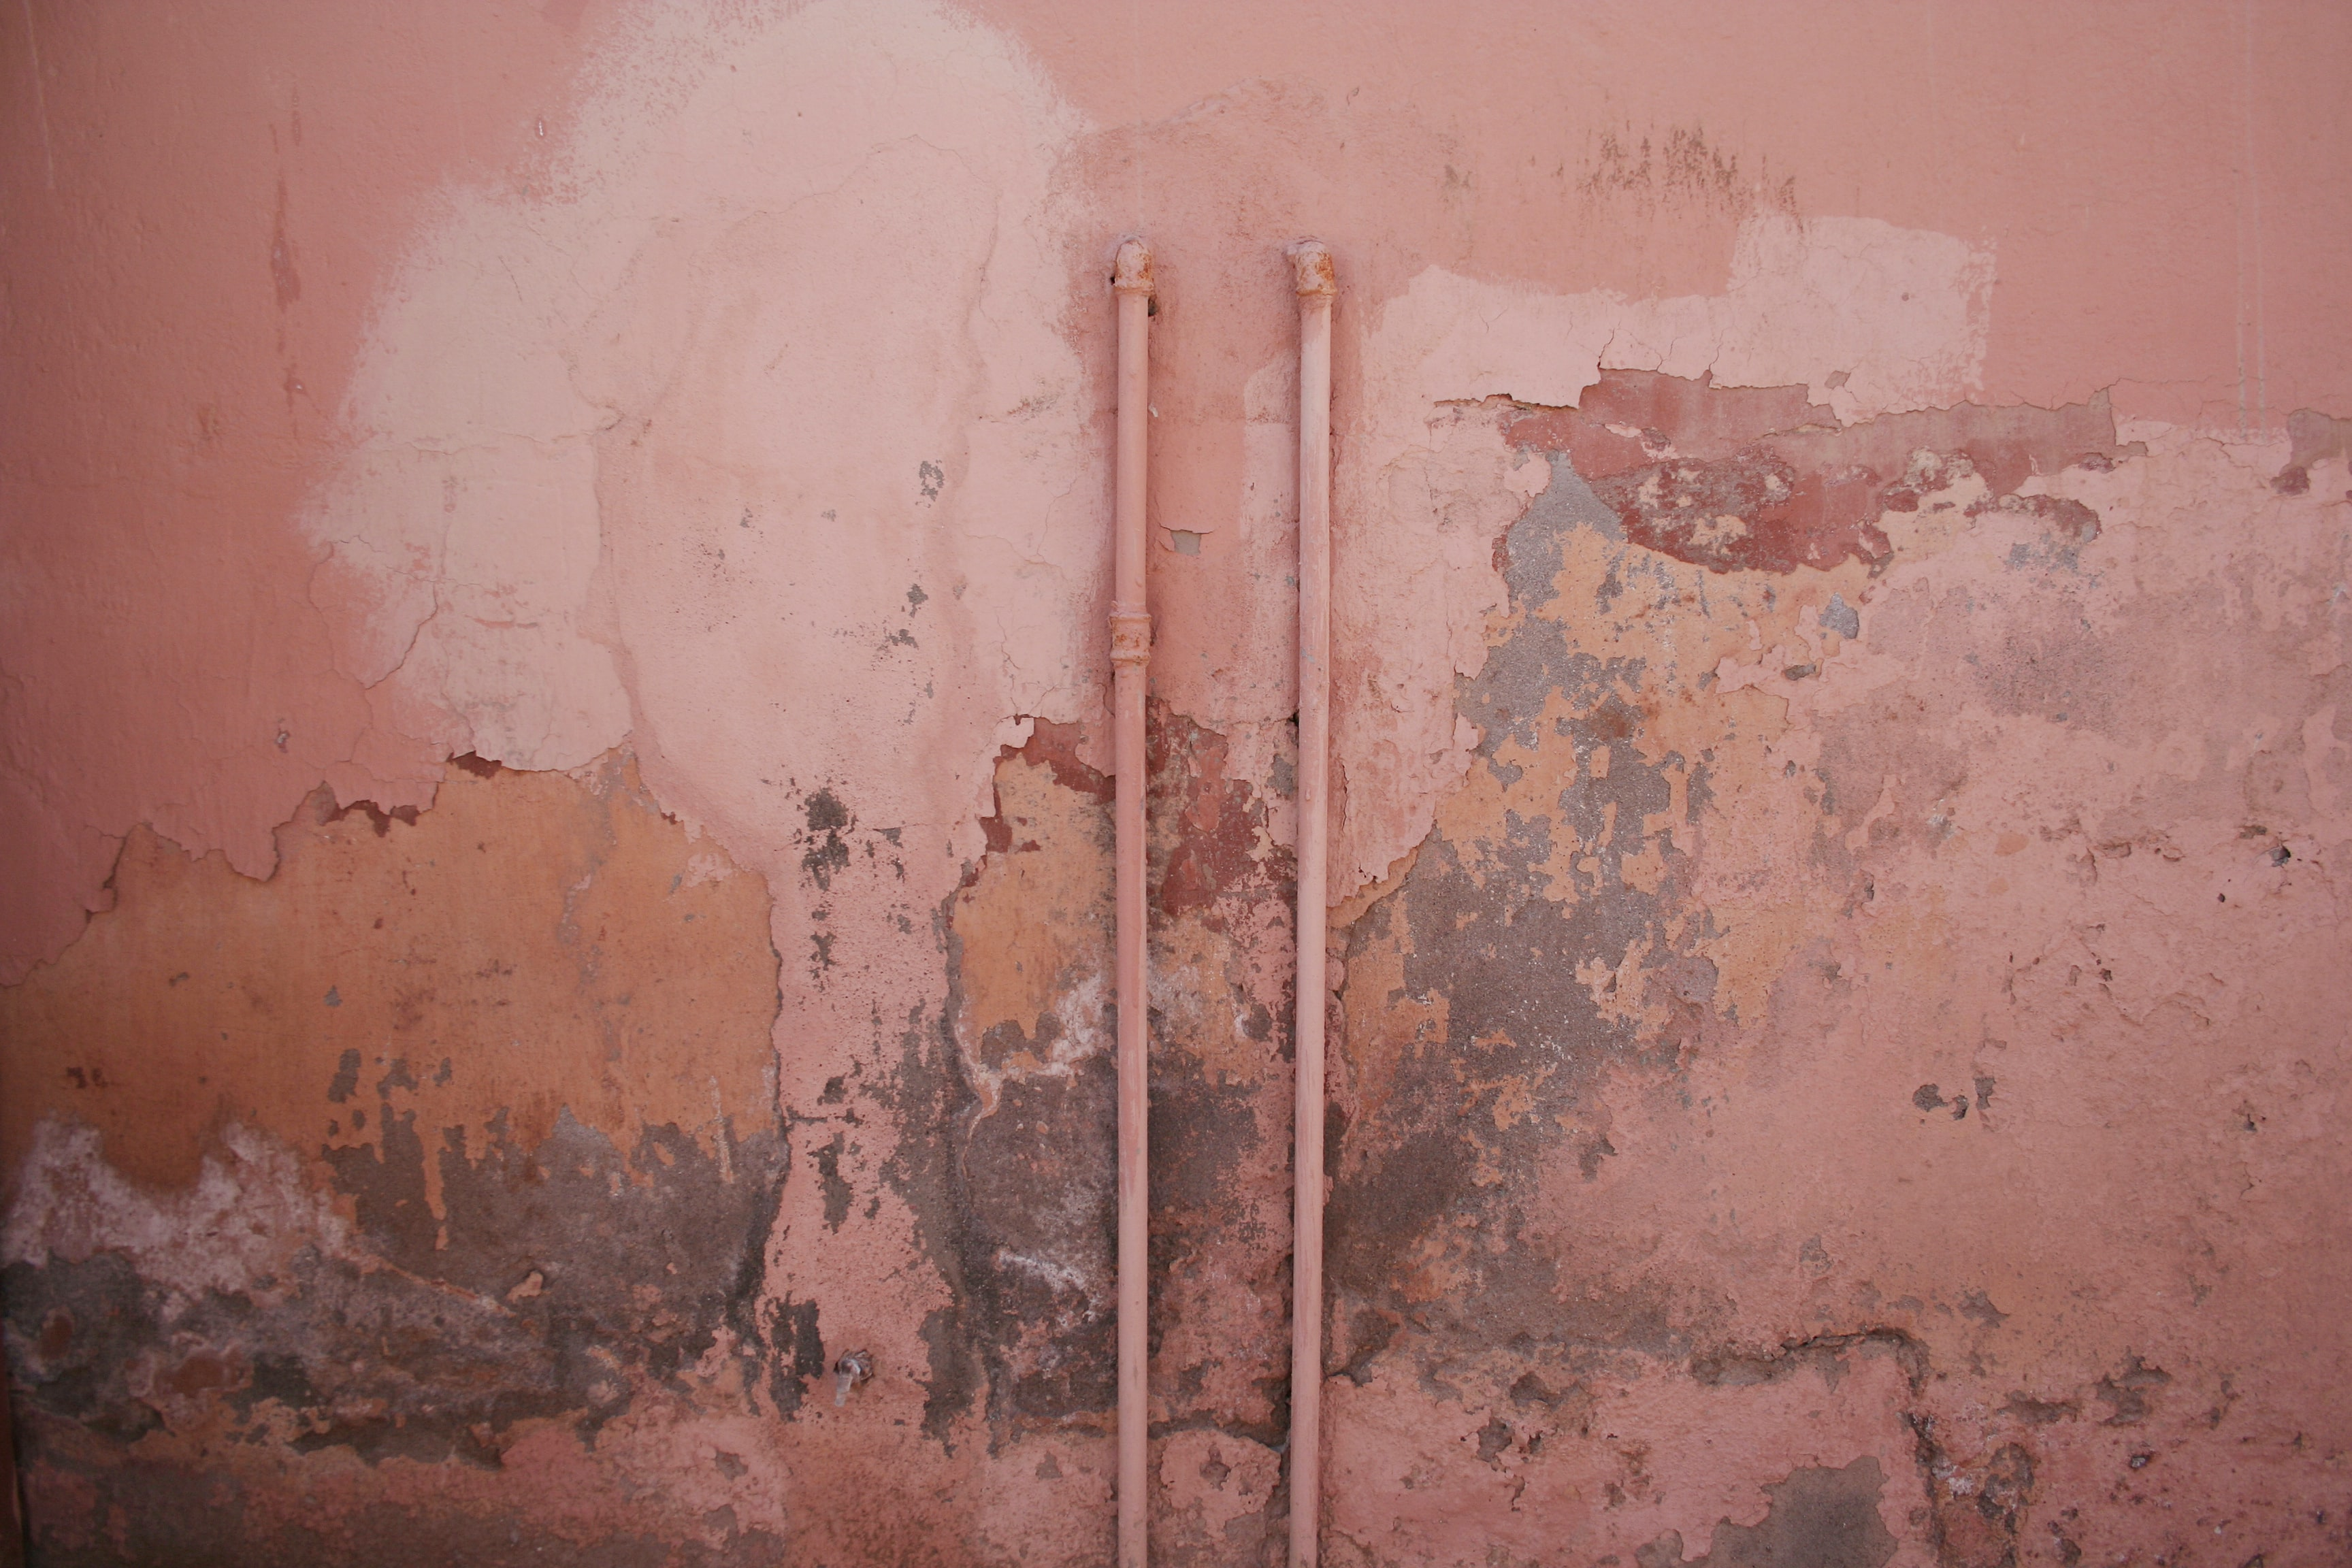 water hose on wall